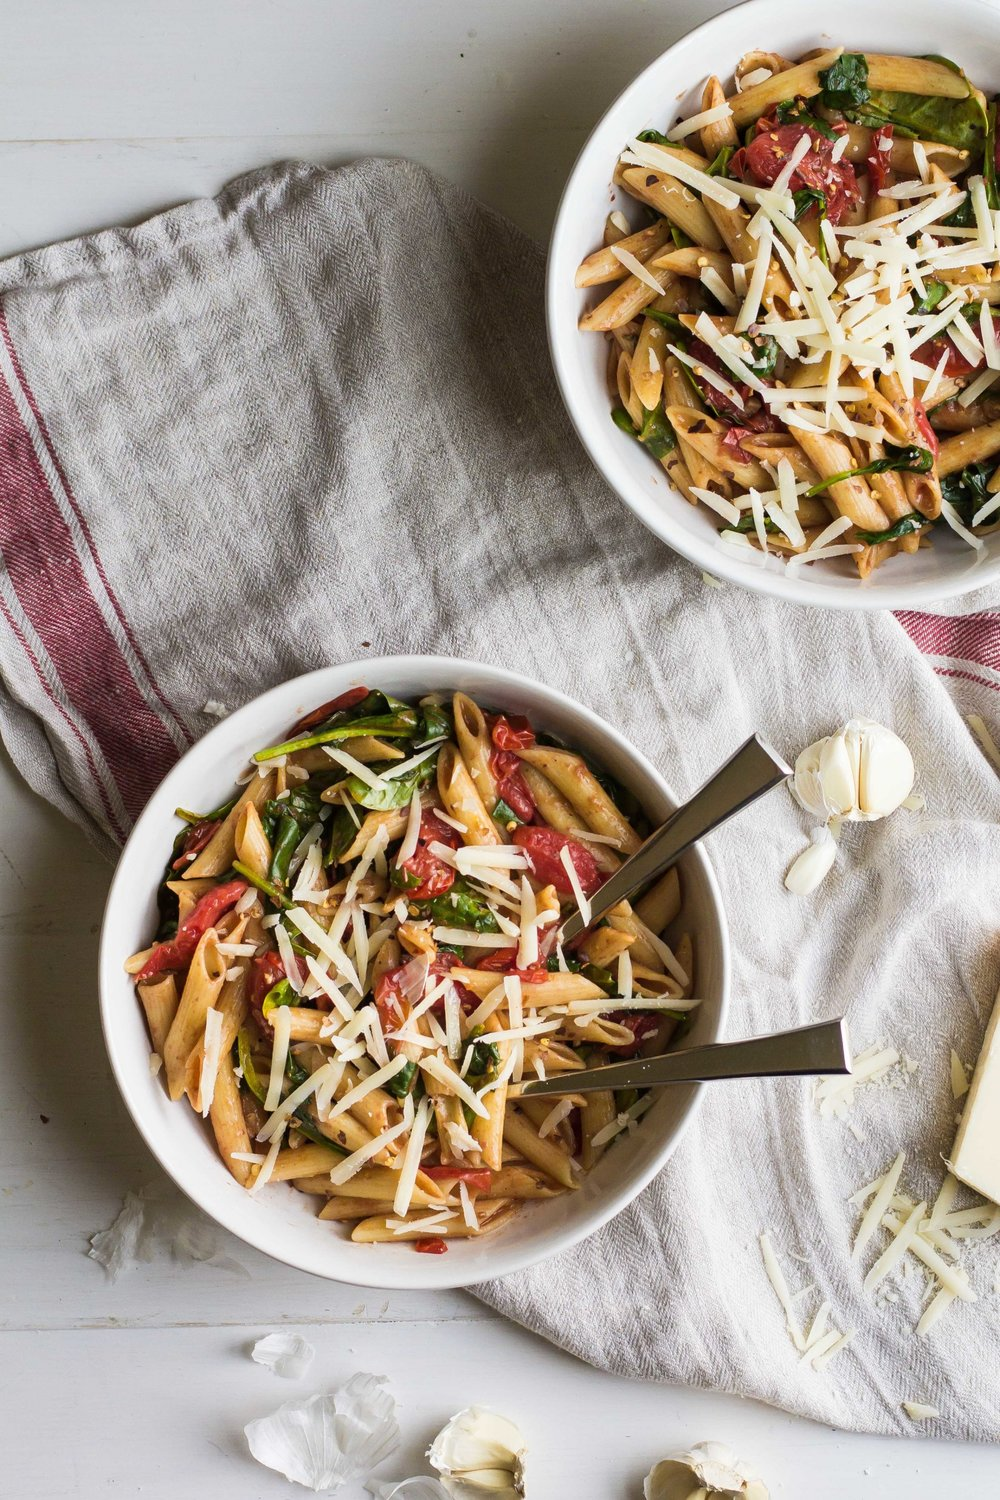 Weeknight Pasta with Cherry Tomatoes + Spinach - Sarah J. Hauser